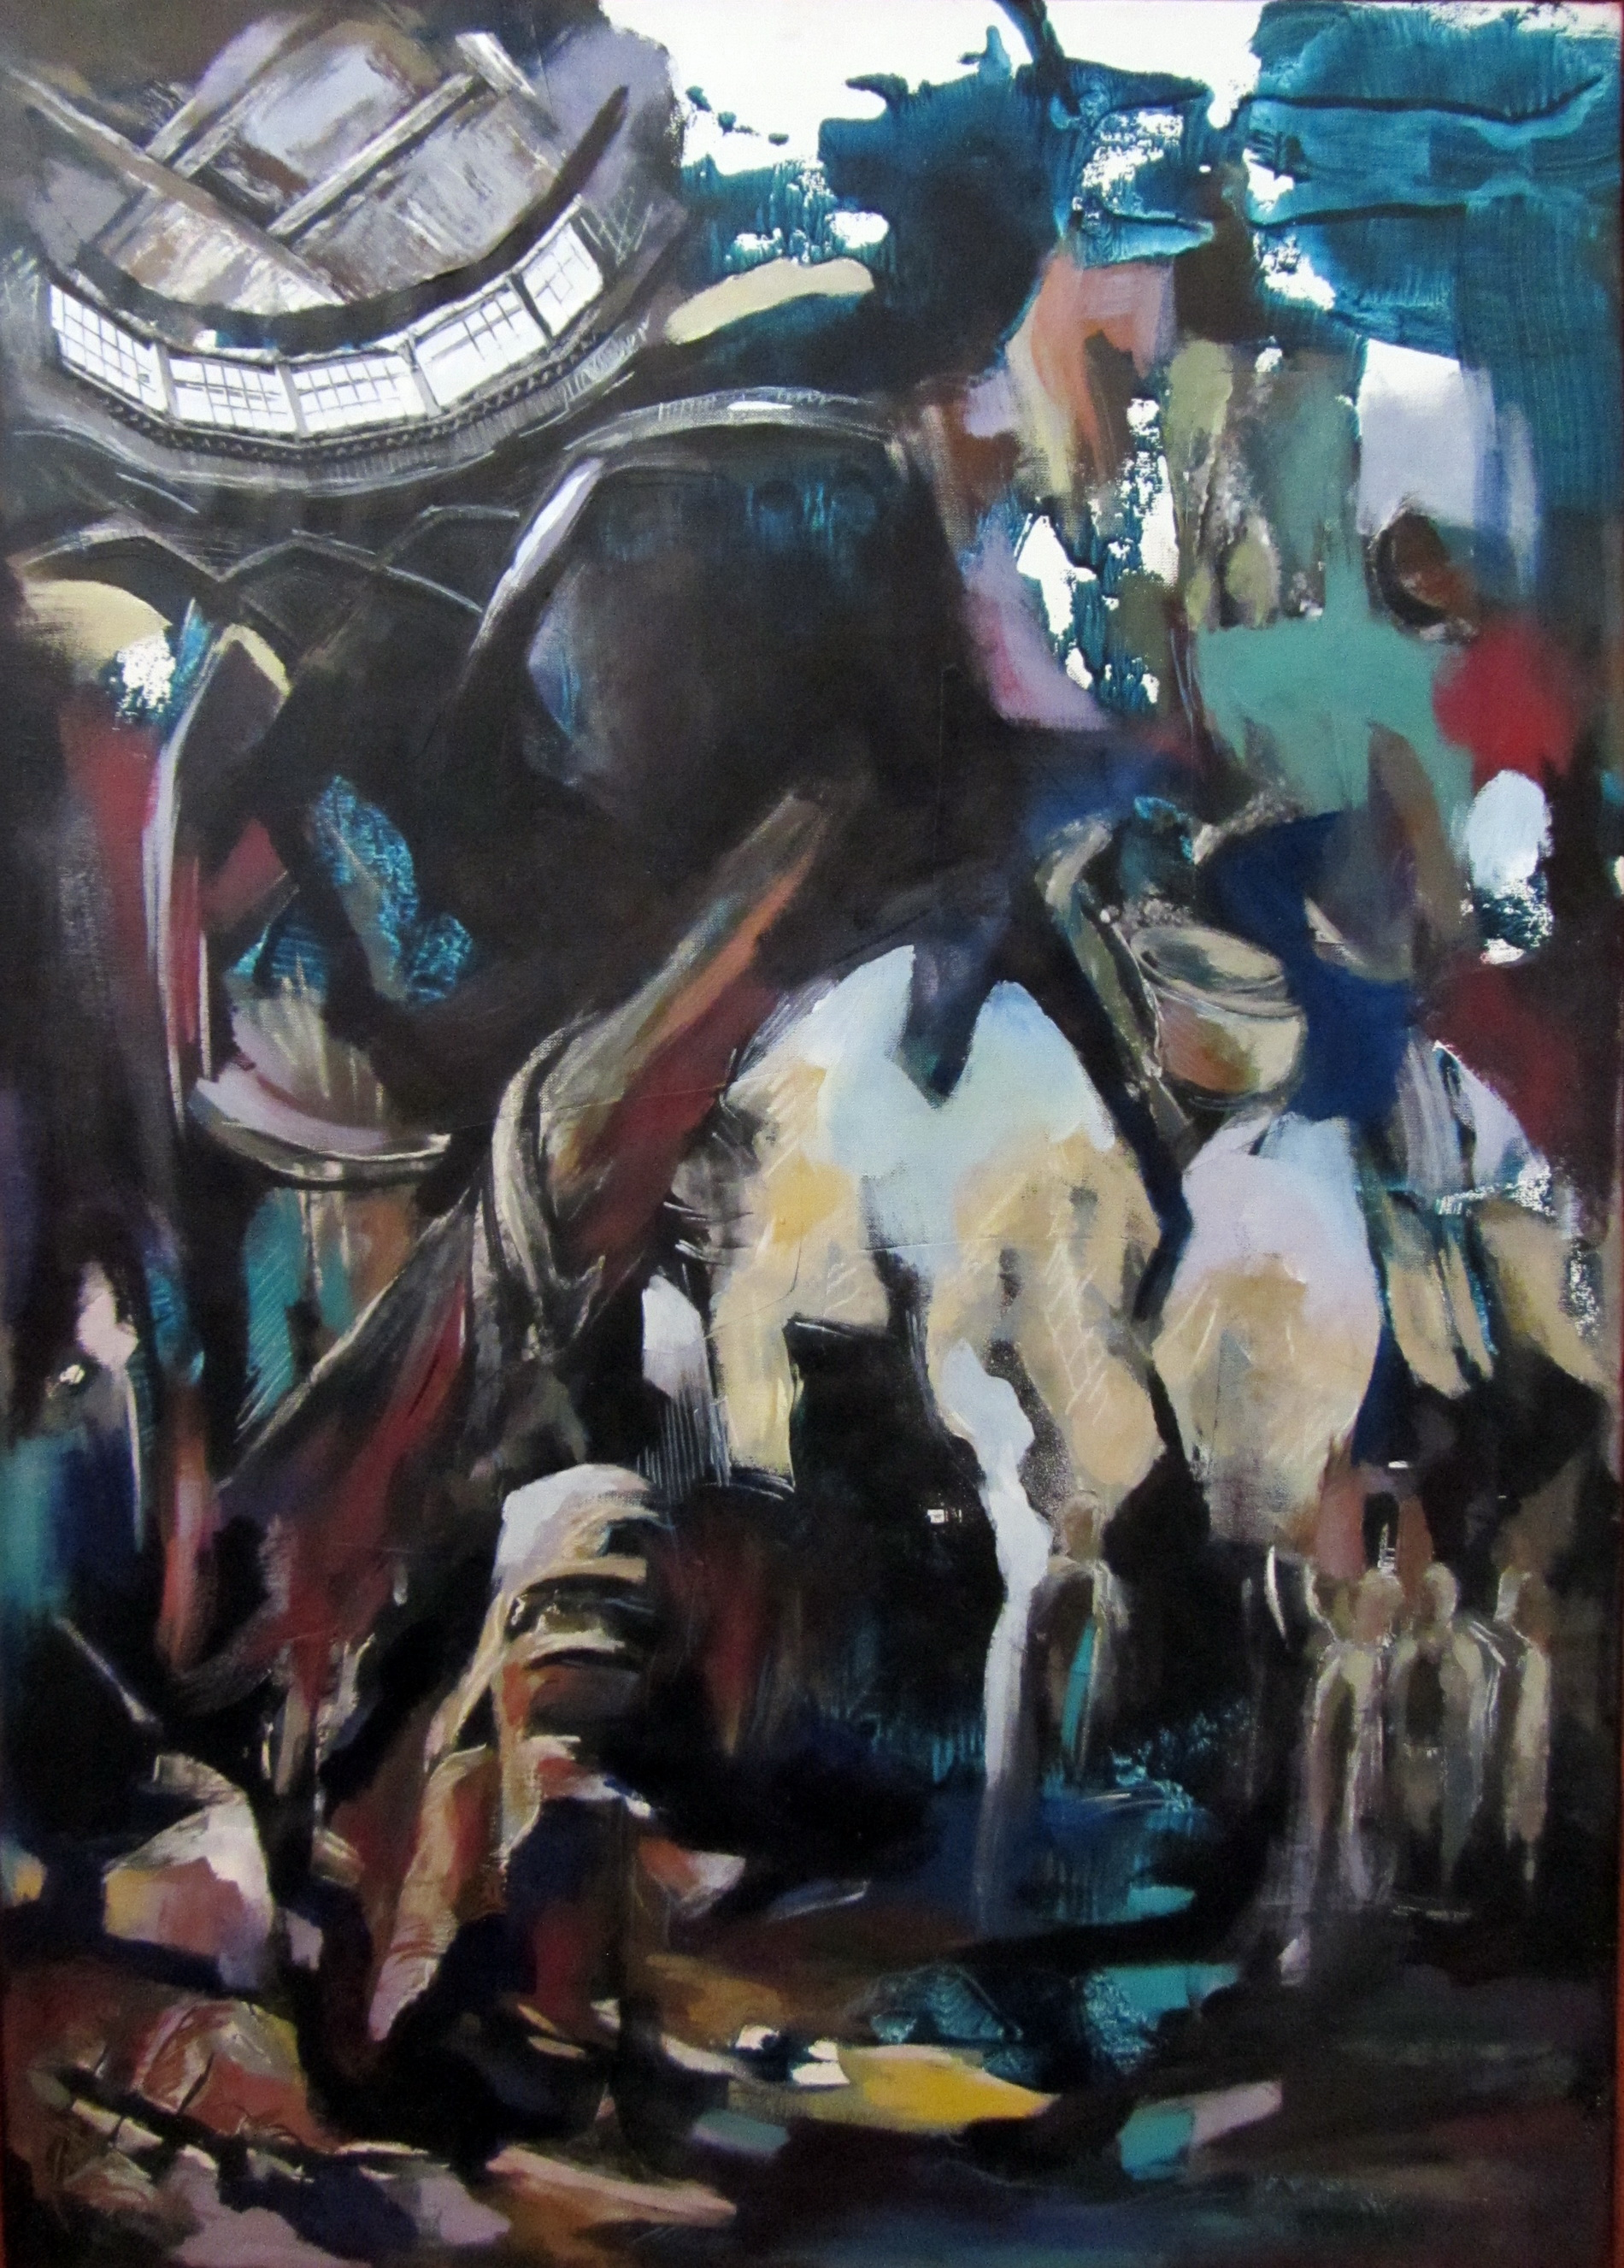 Departure #7, mixed media on canvas, 31x22 inches, 2011